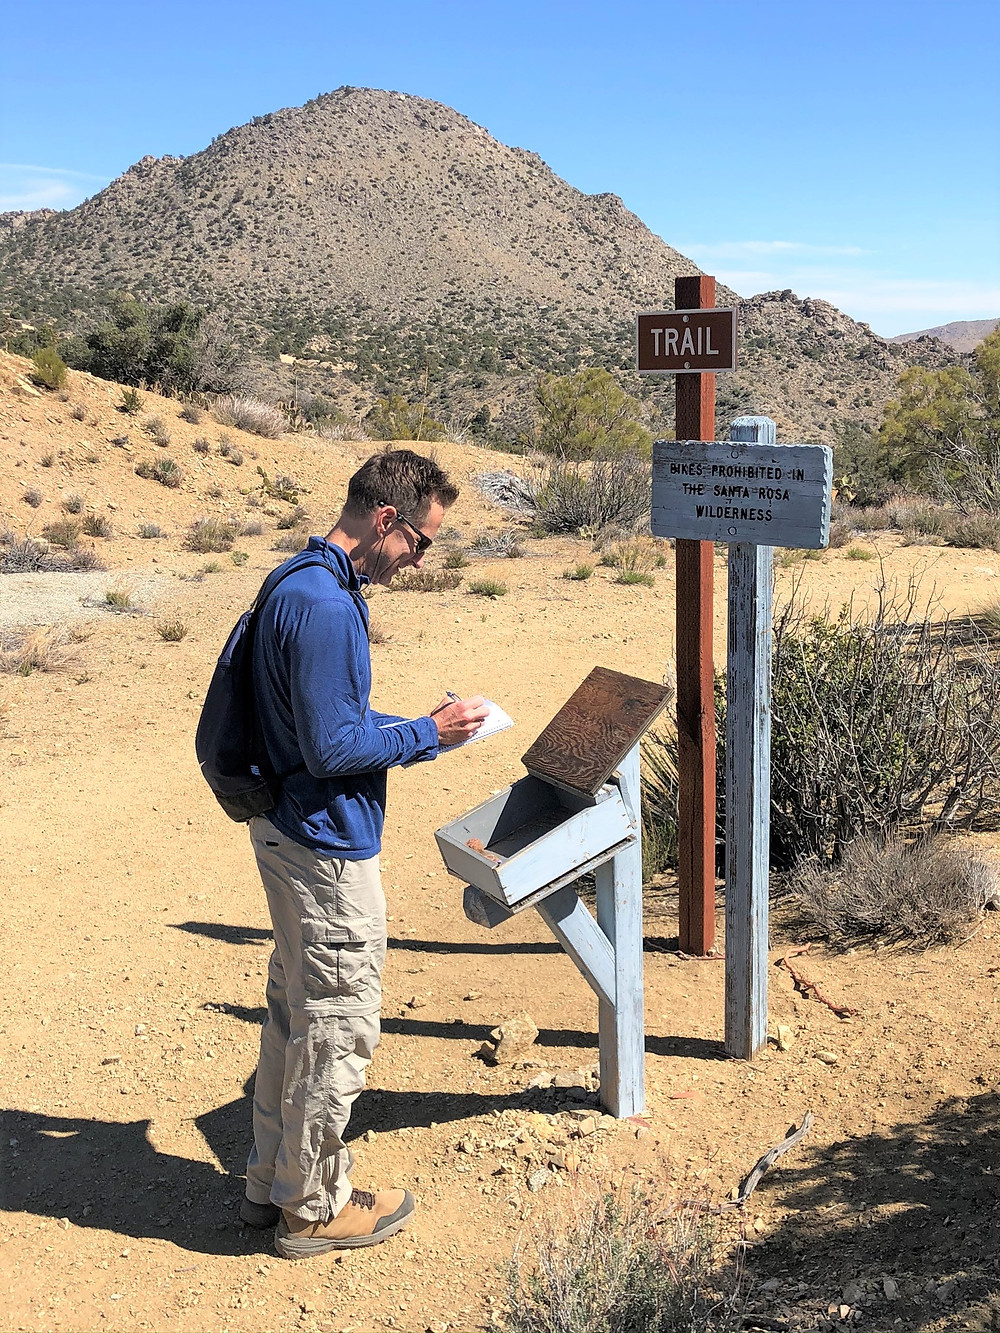 Signing the trail log on the Cactus Spring trail in the Santa Rosa Mountain Wilderness